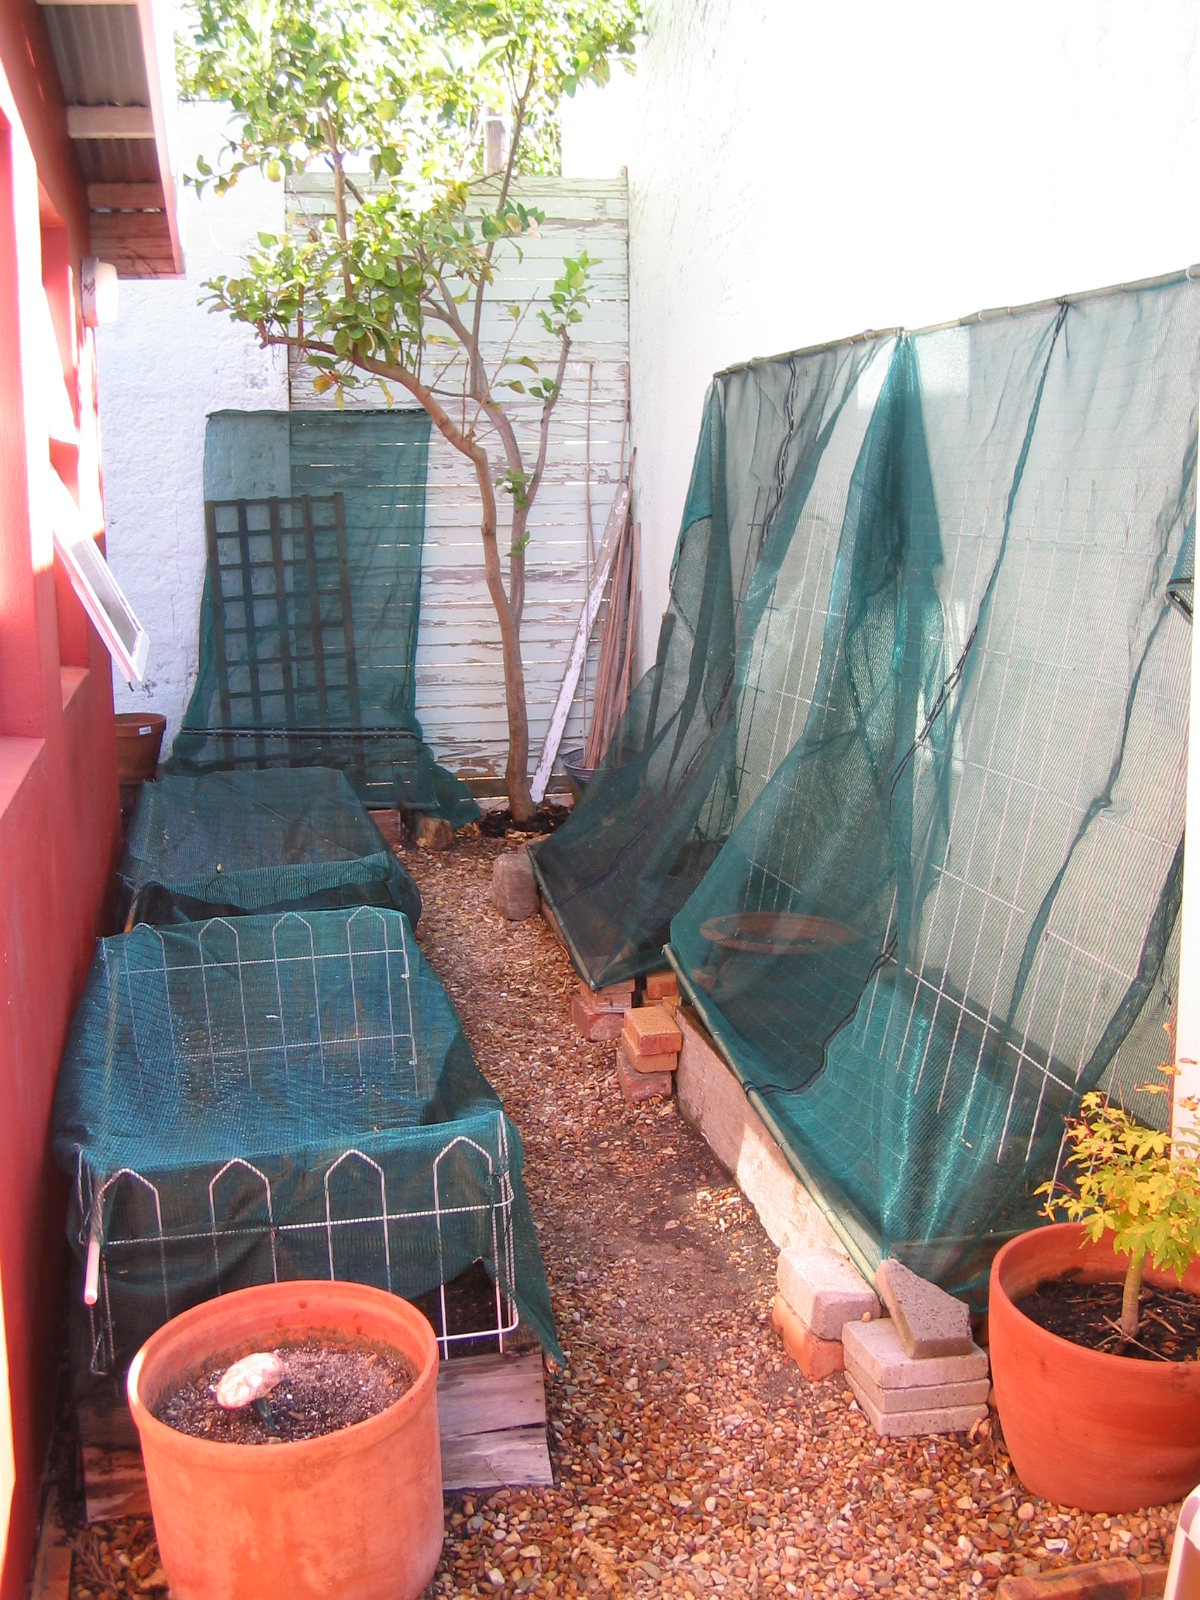 Veggie garden in cat exclusion mode! Of course in summer the shade netting will also help to keep out the scalding sun.